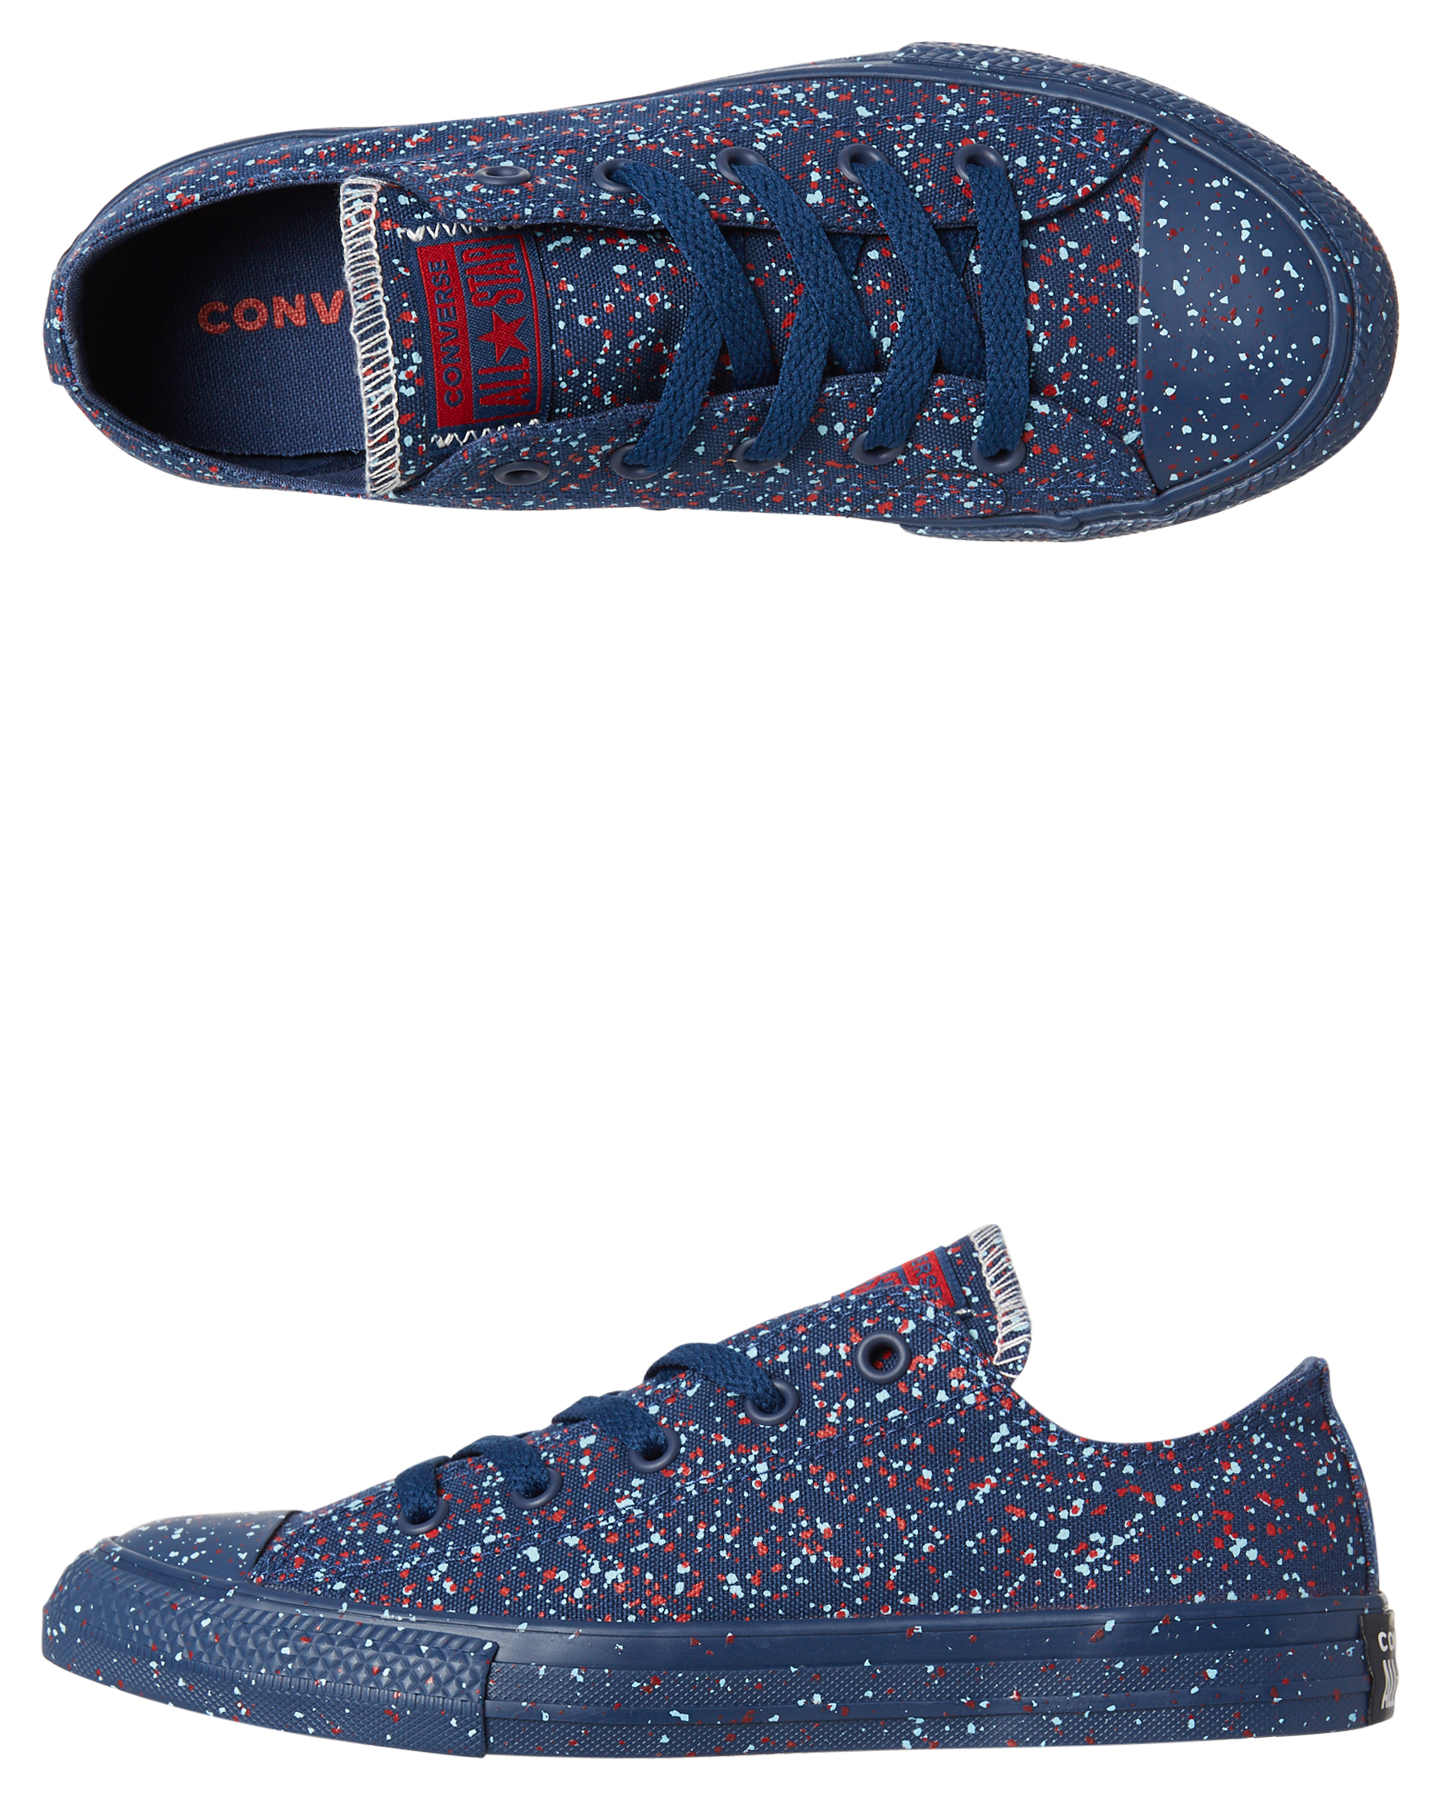 Converse Kids Chuck Taylor All Star Speckle Shoe - Navy Enamel Red ... 3a1412f3ad9